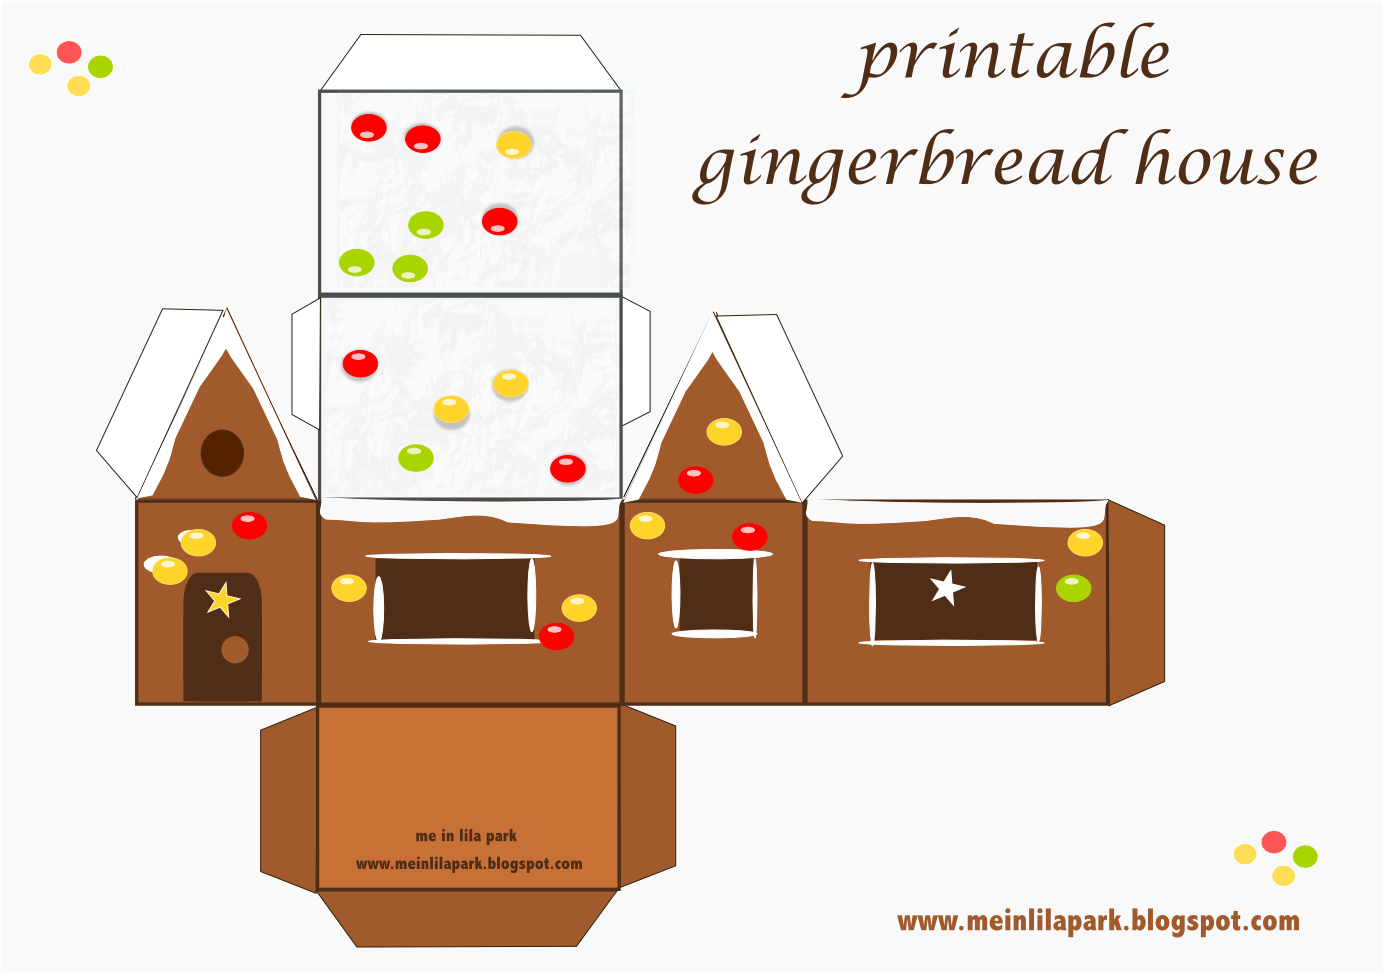 photo regarding Printable Gingerbread House named Cost-free printable gingerbread household - ausdruckbares